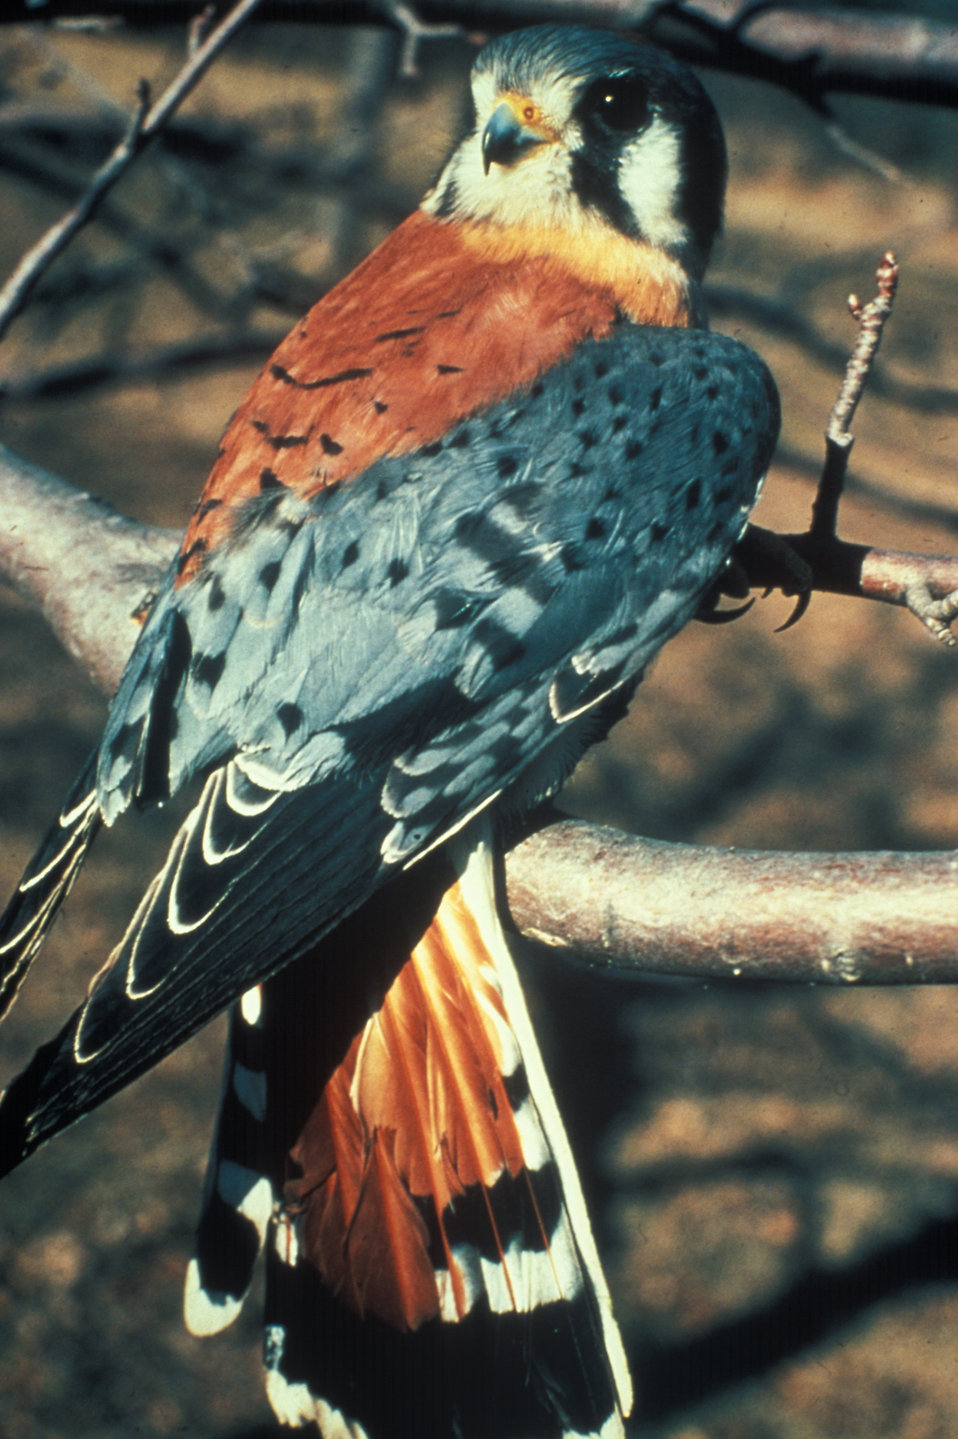 An American kestral : Free Stock Photo